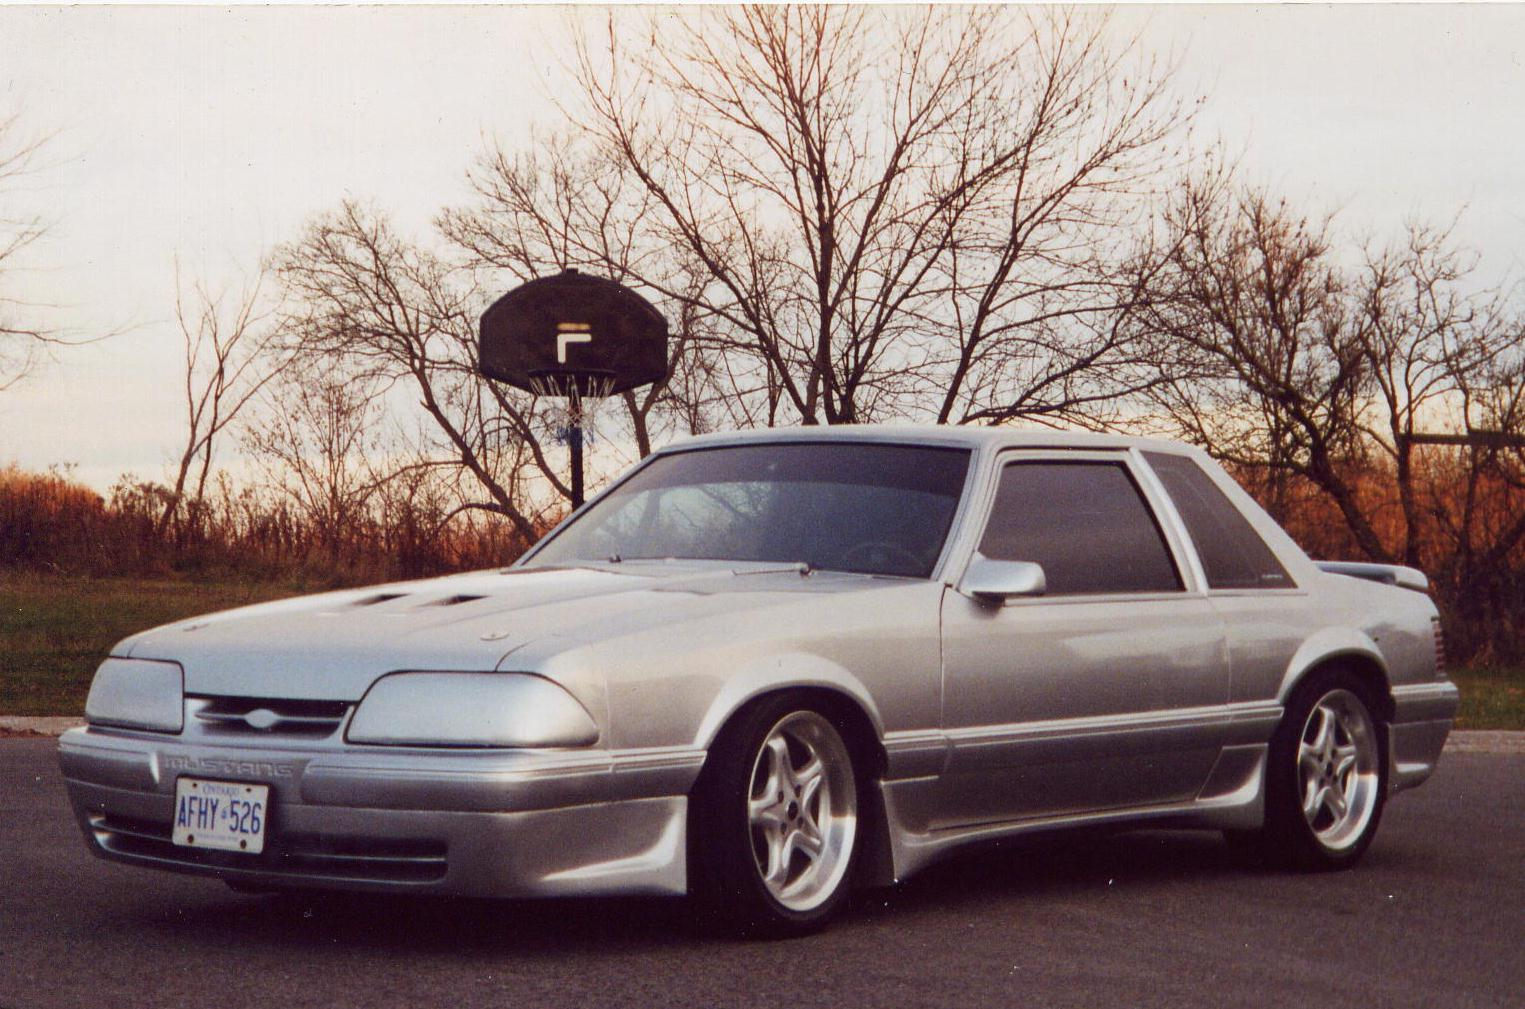 1990 Mustang DECH Silver Coupe